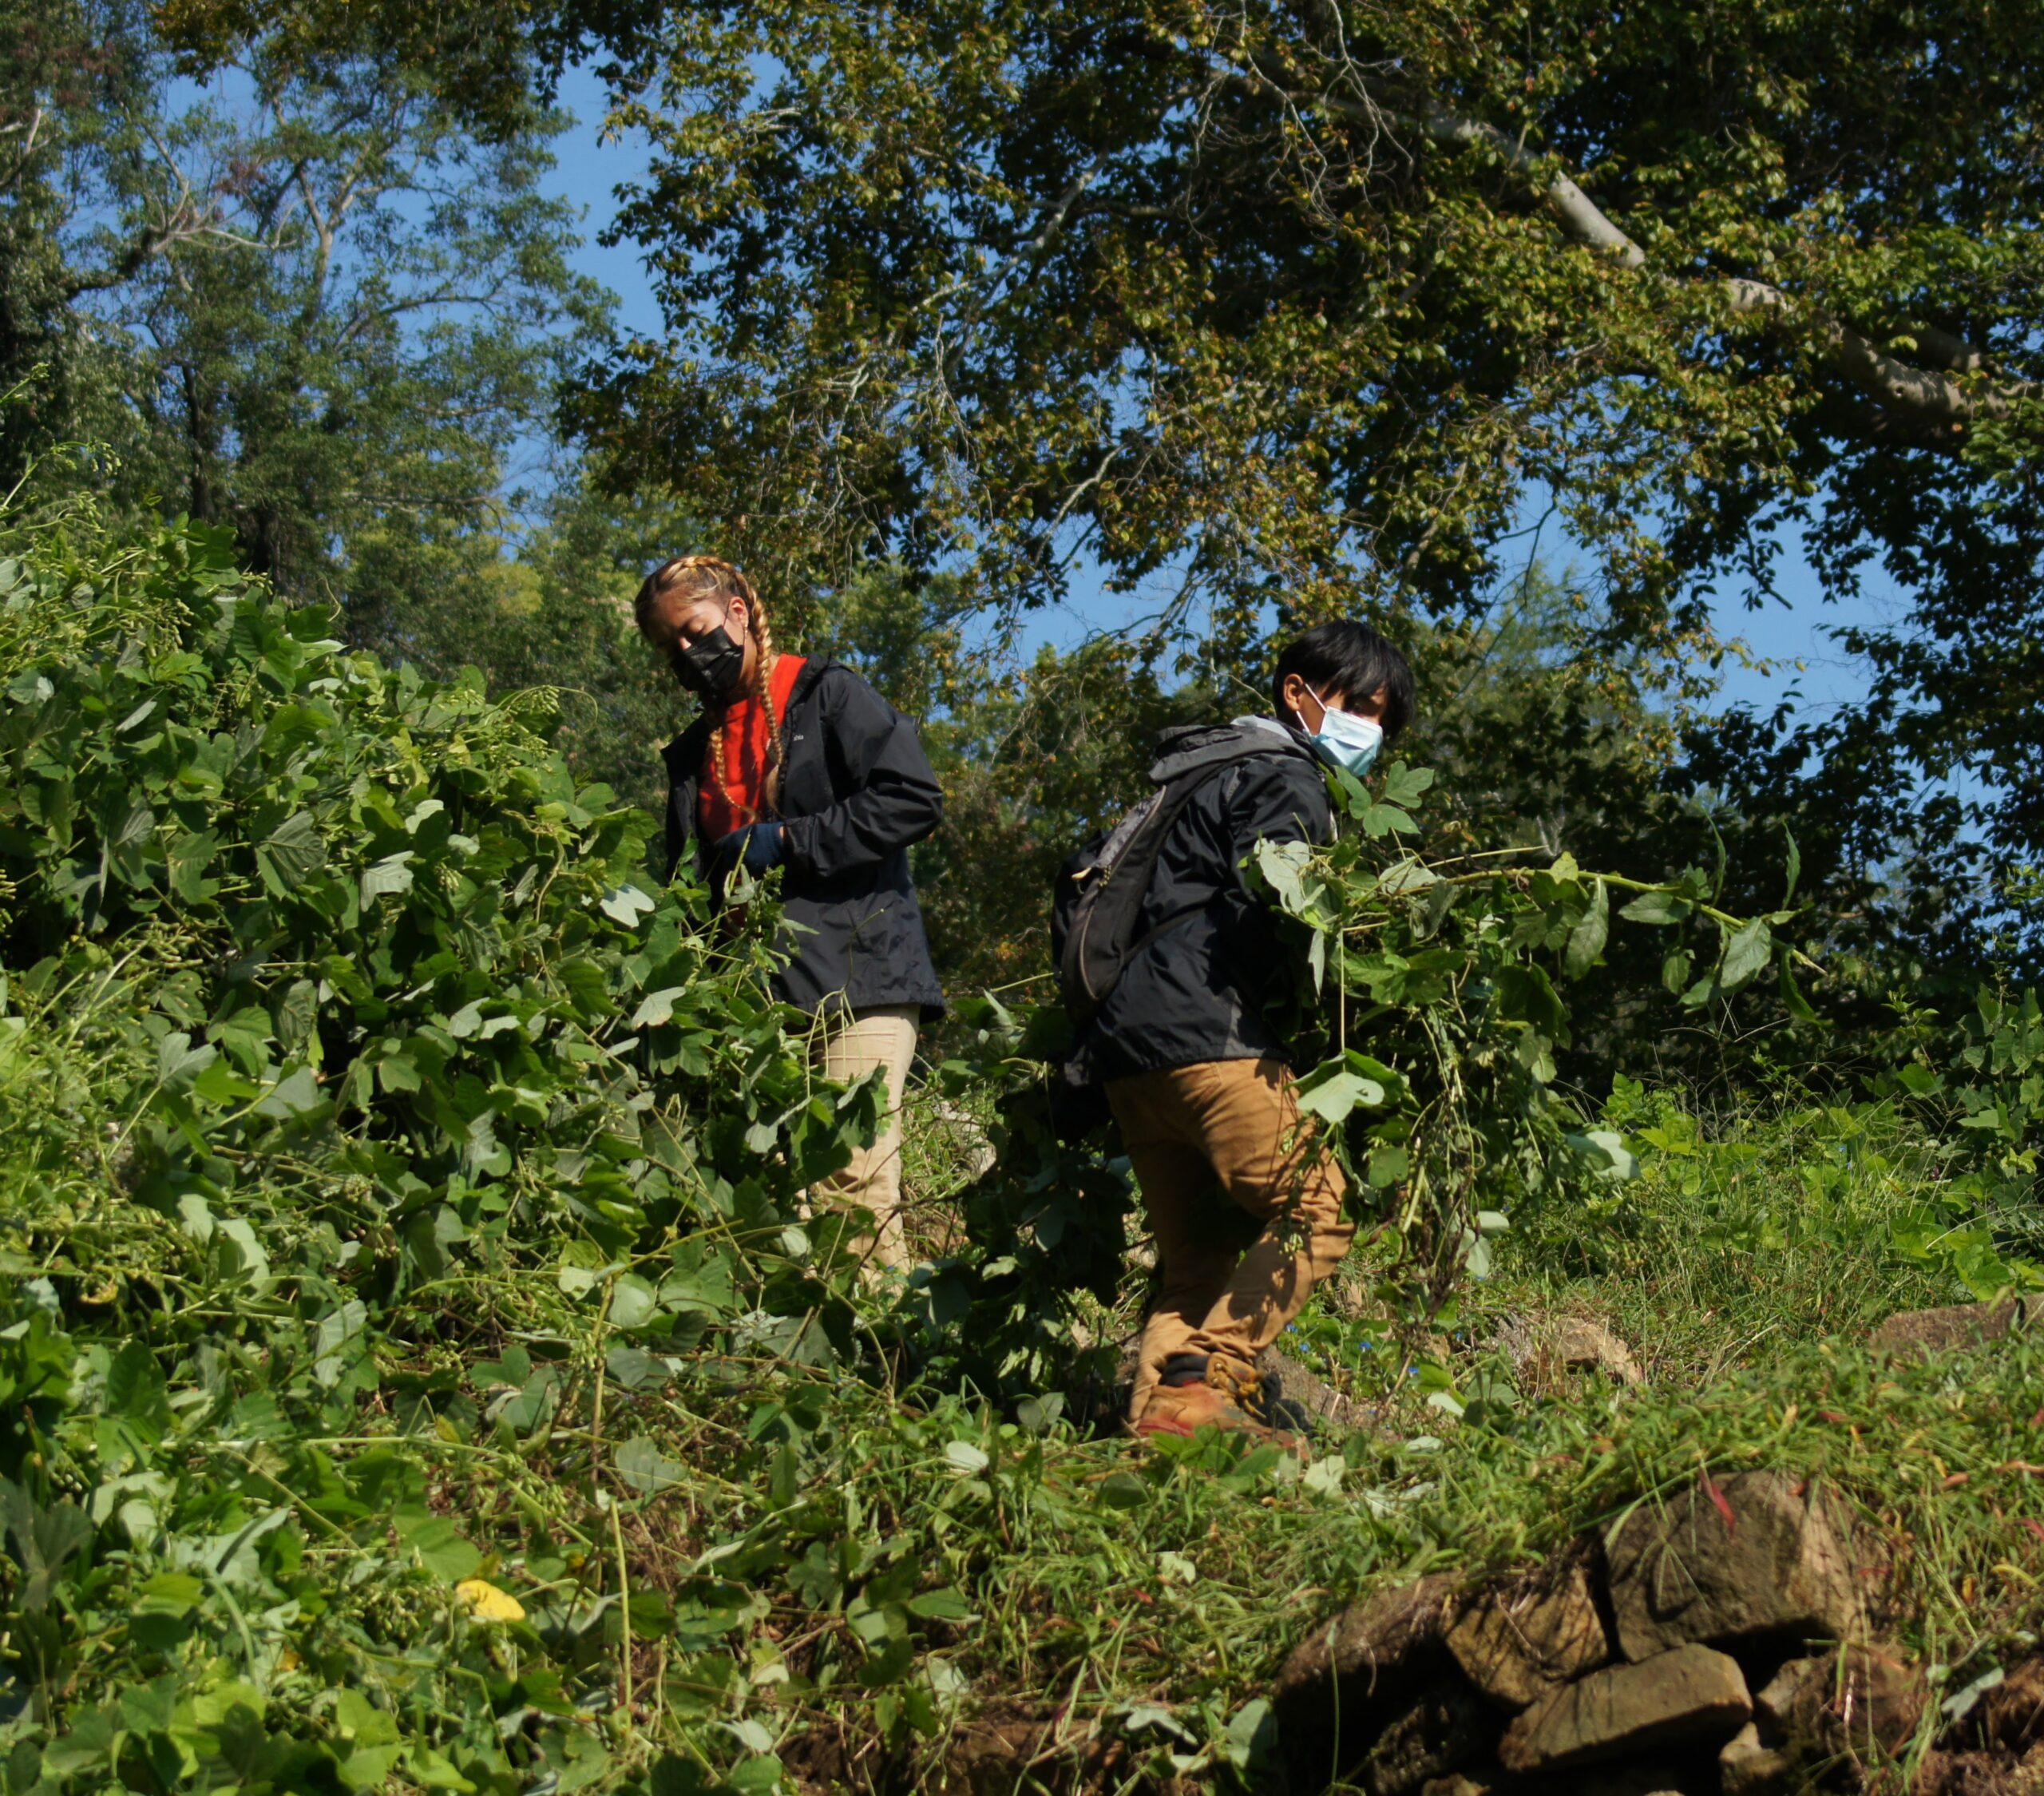 Amy pulling kudzu with Hector